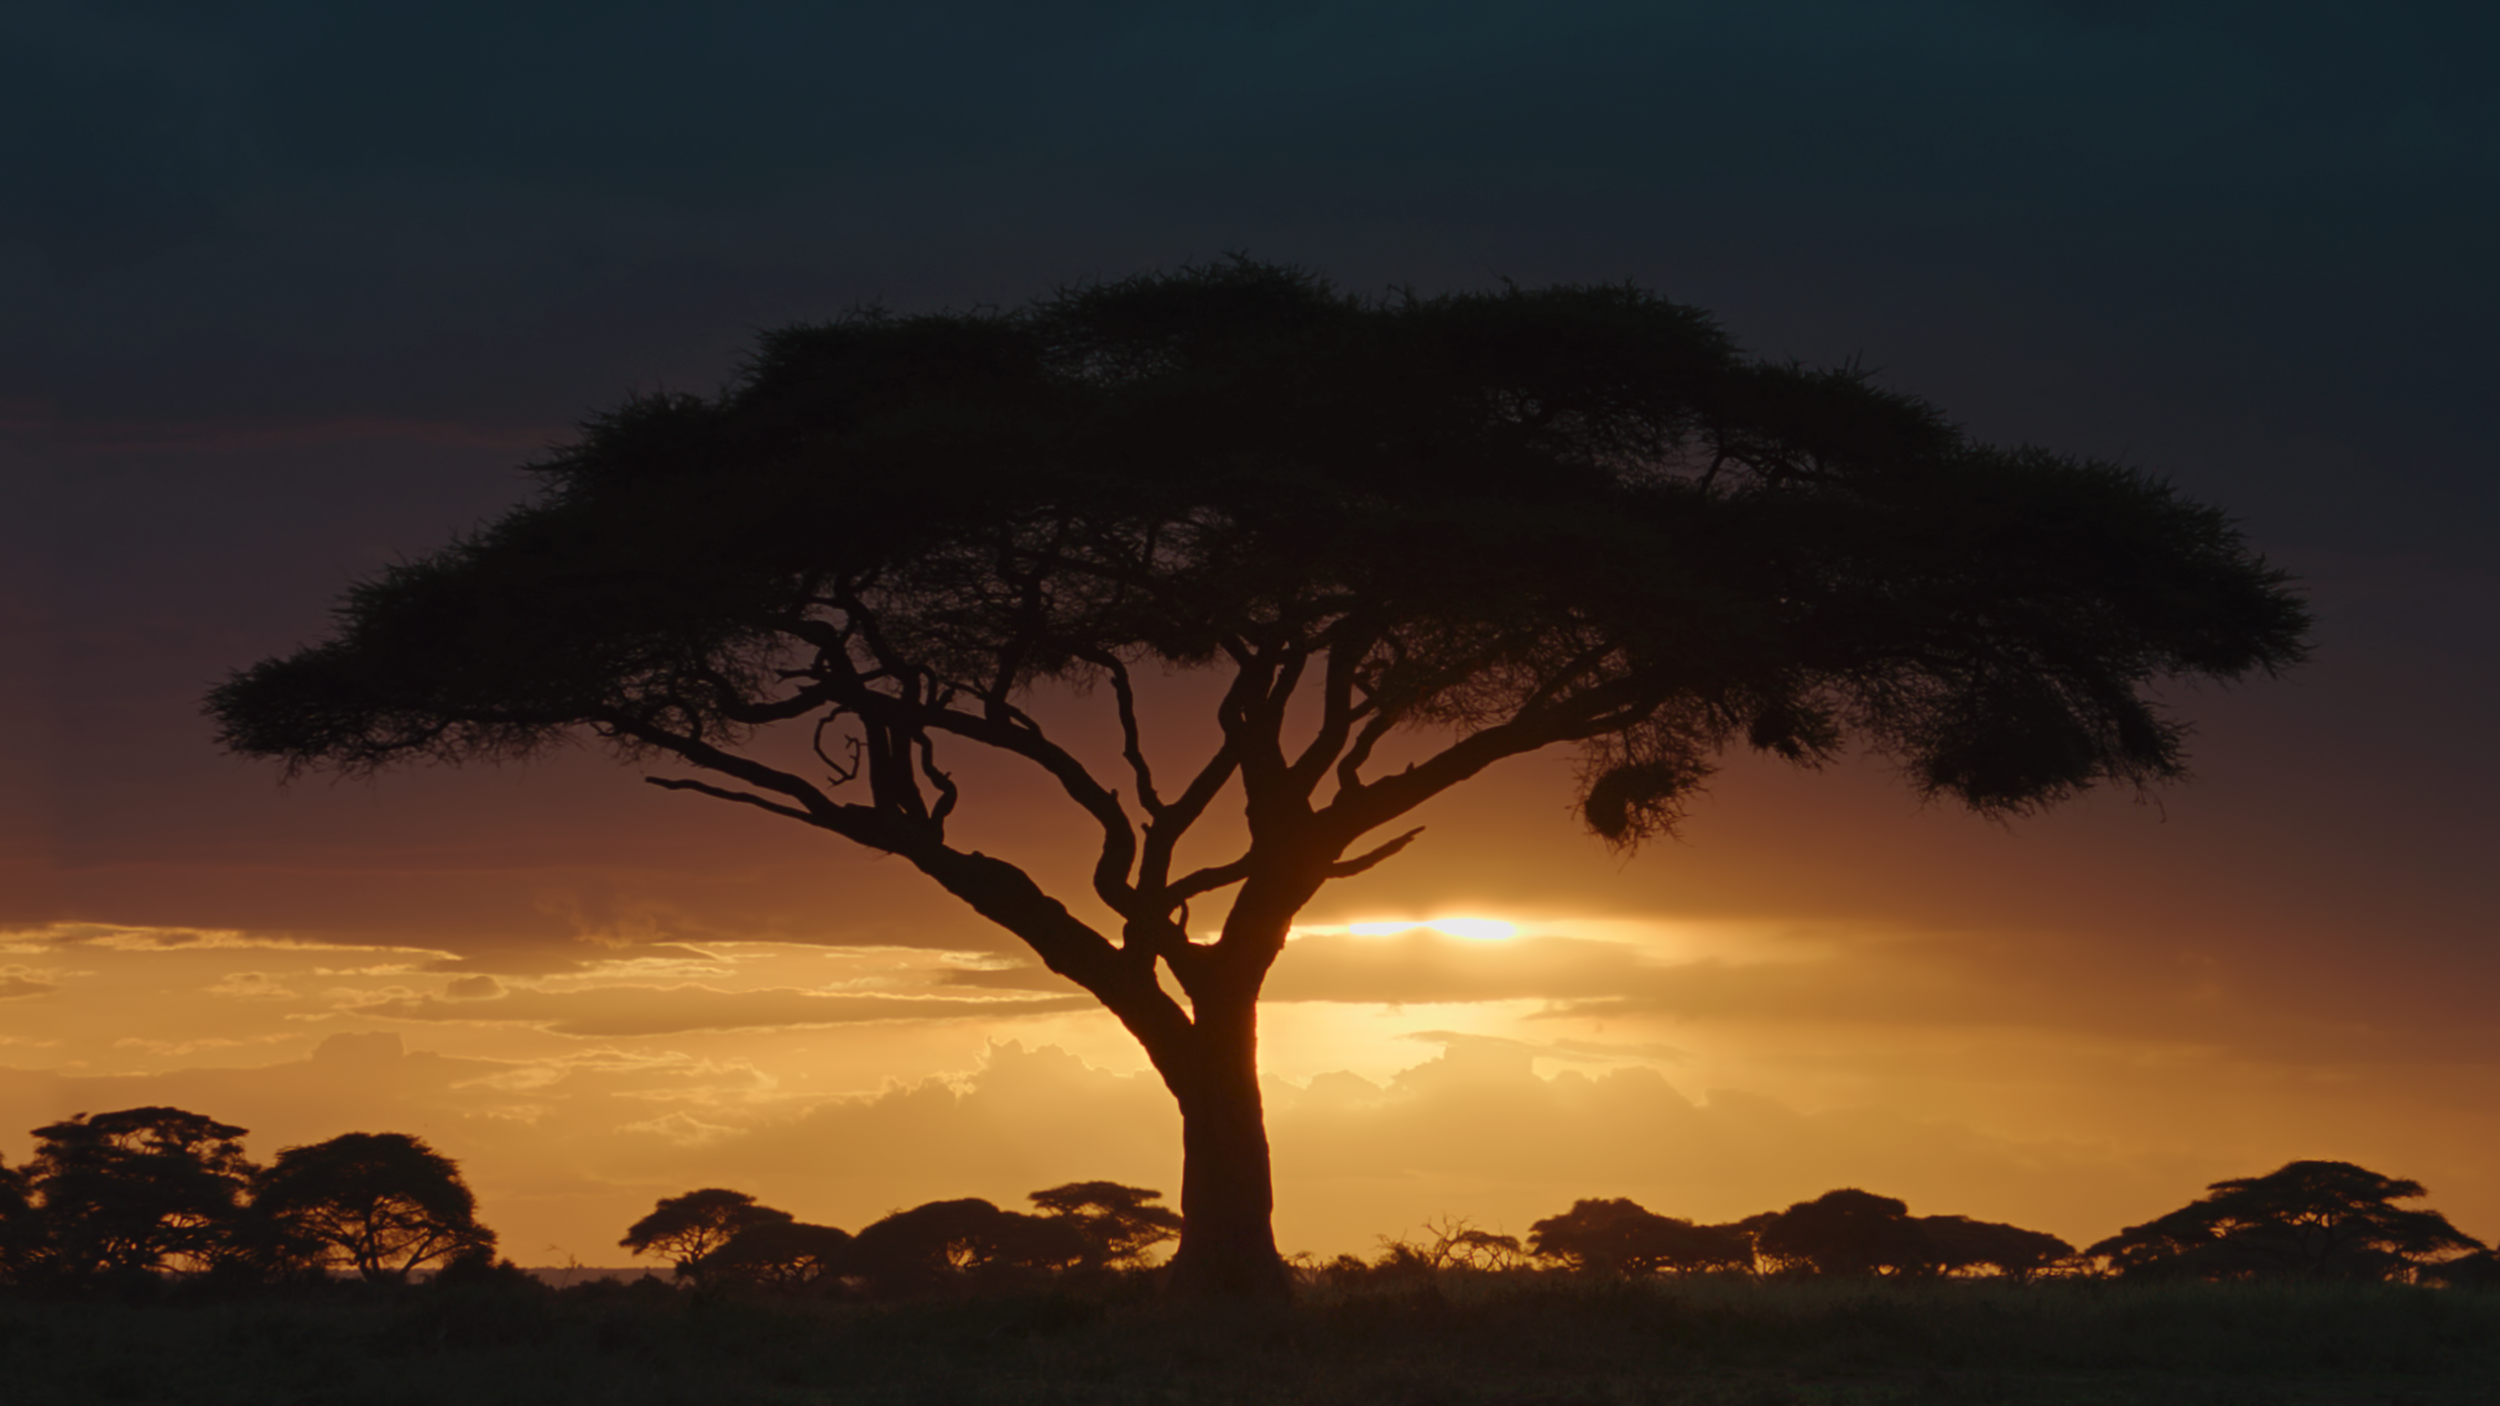 Sunset in Kenya, Africa.